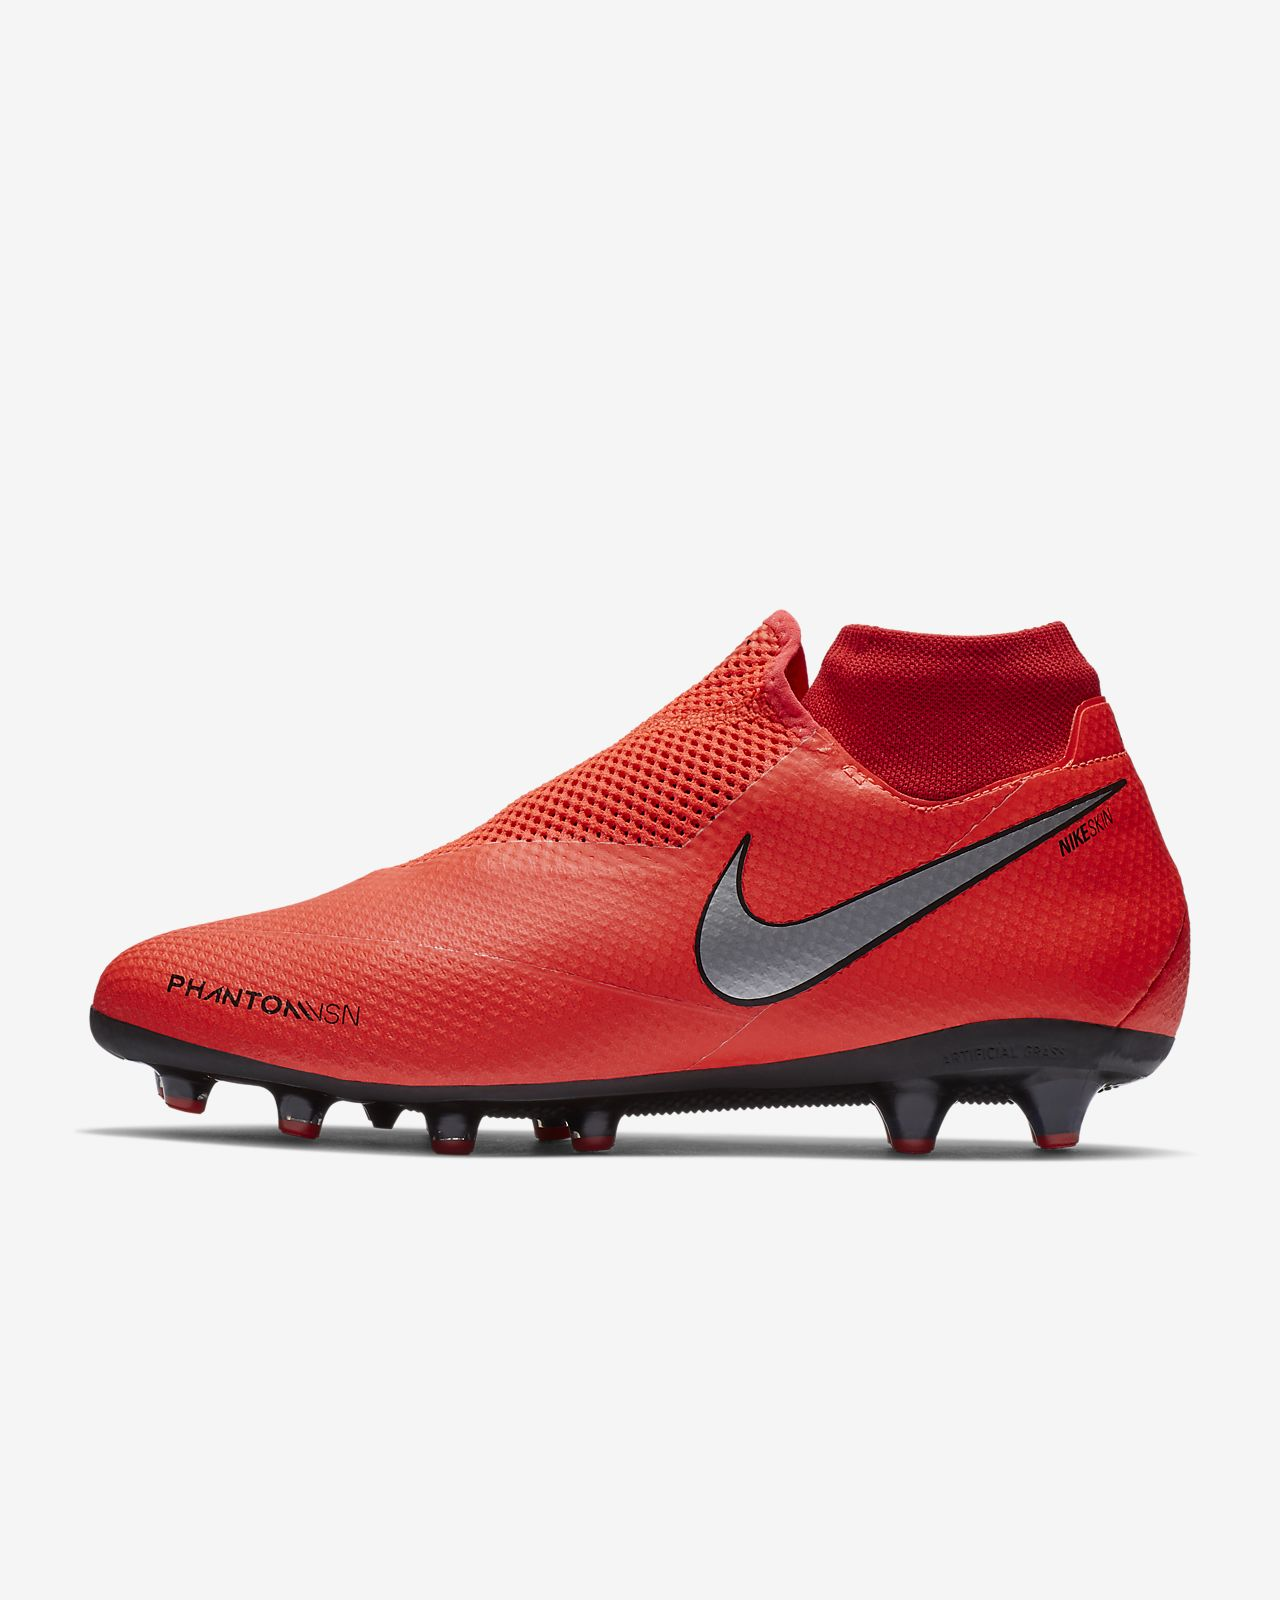 Nike Phantom Vision Pro Dynamic Fit AG-PRO Artificial-Grass Football Boot